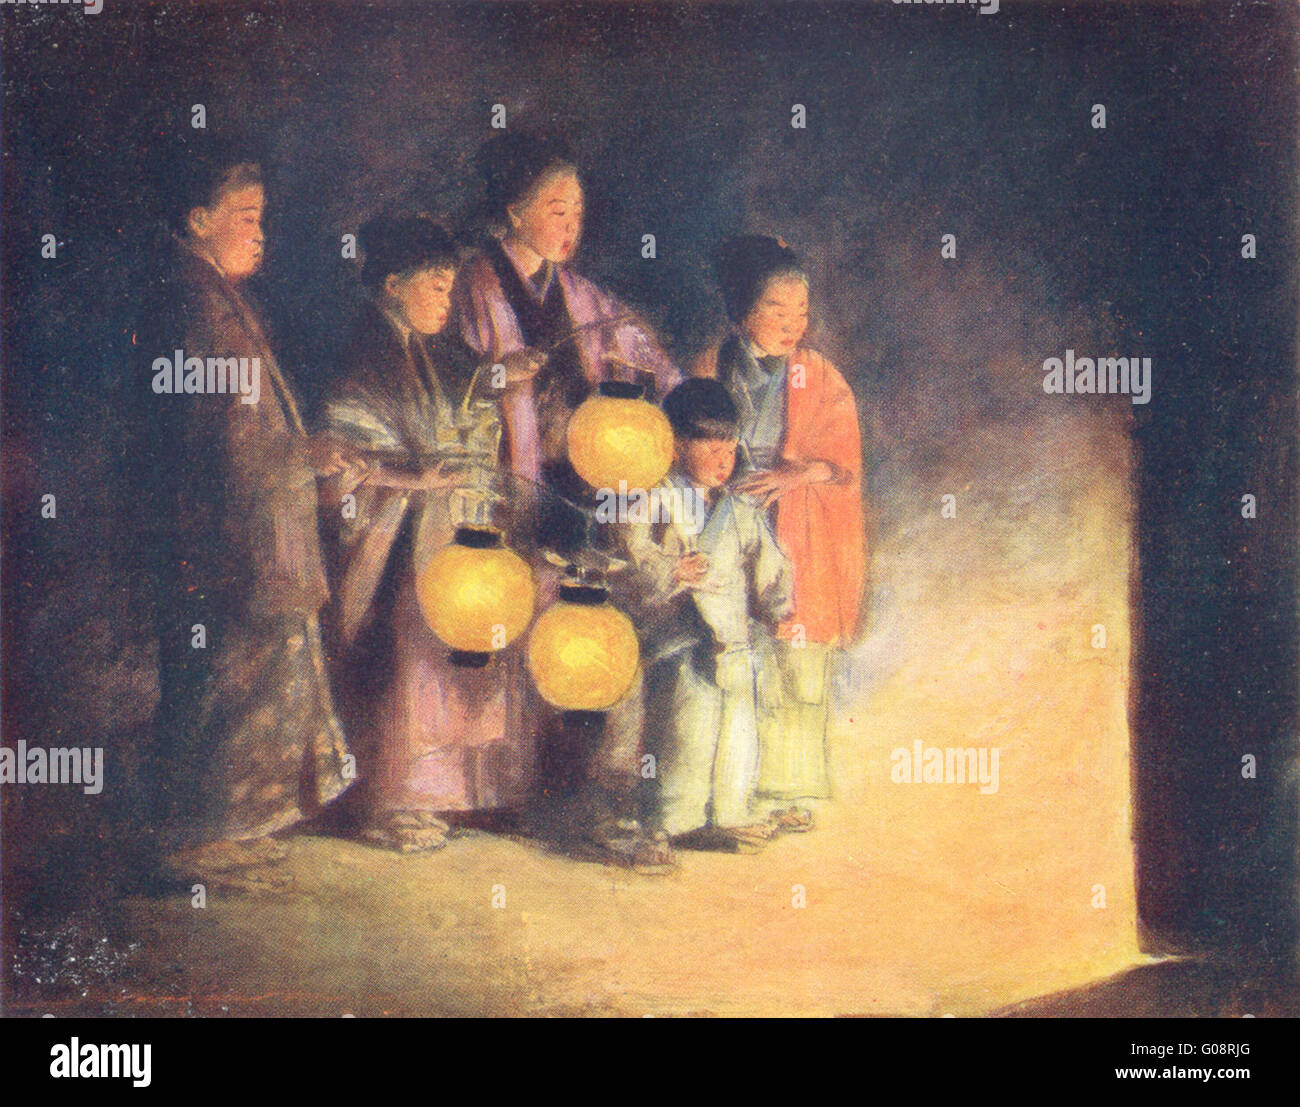 Japan Lantern Light Painting High Resolution Stock Photography And Images Alamy